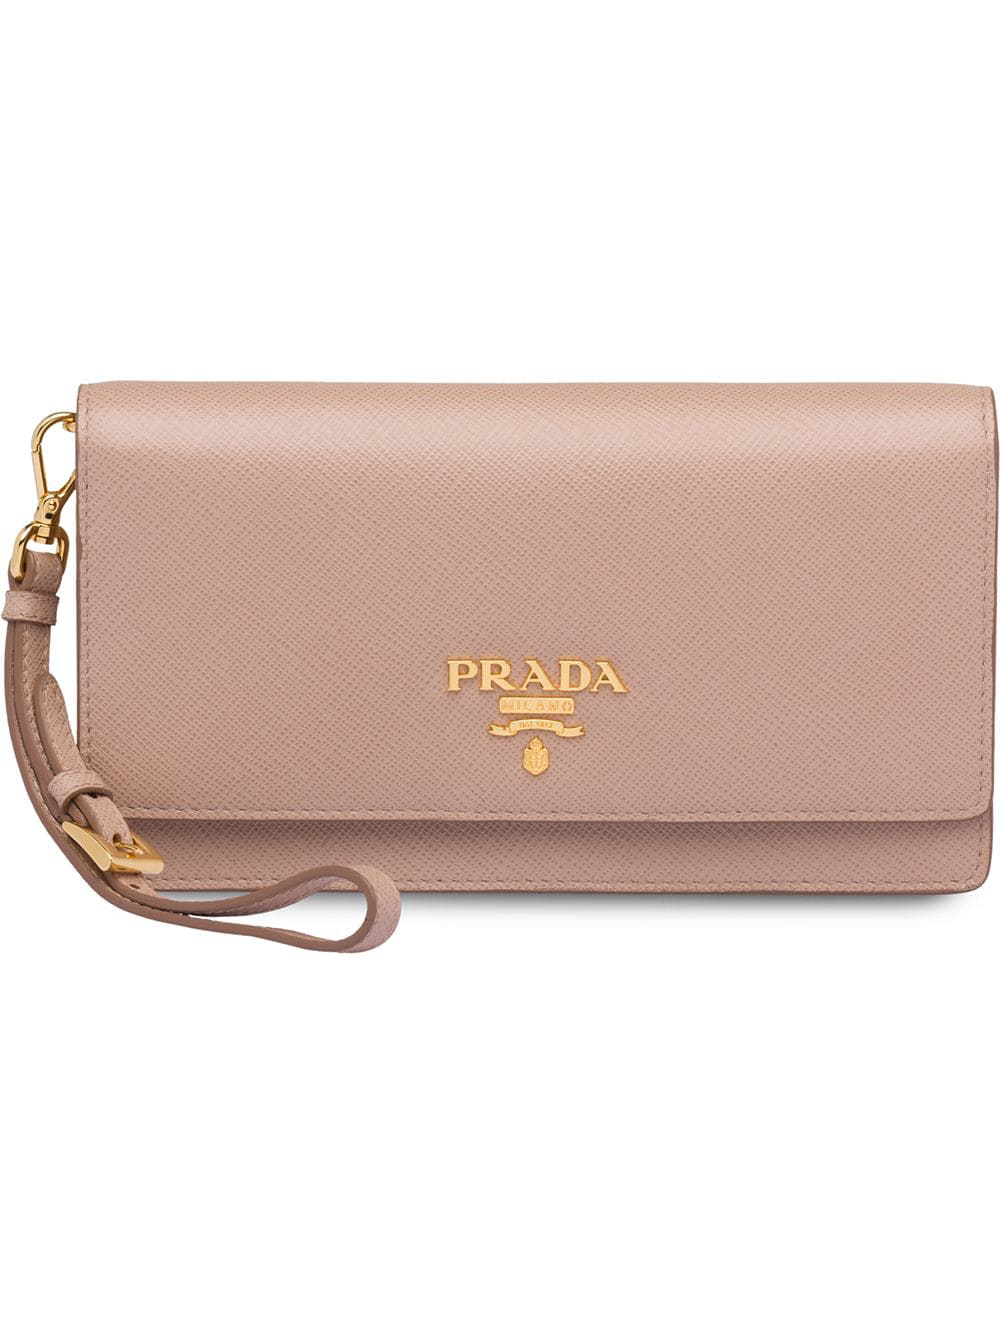 96dbb5497a68 Prada Saffiano Leather Mini-Bag - Pink